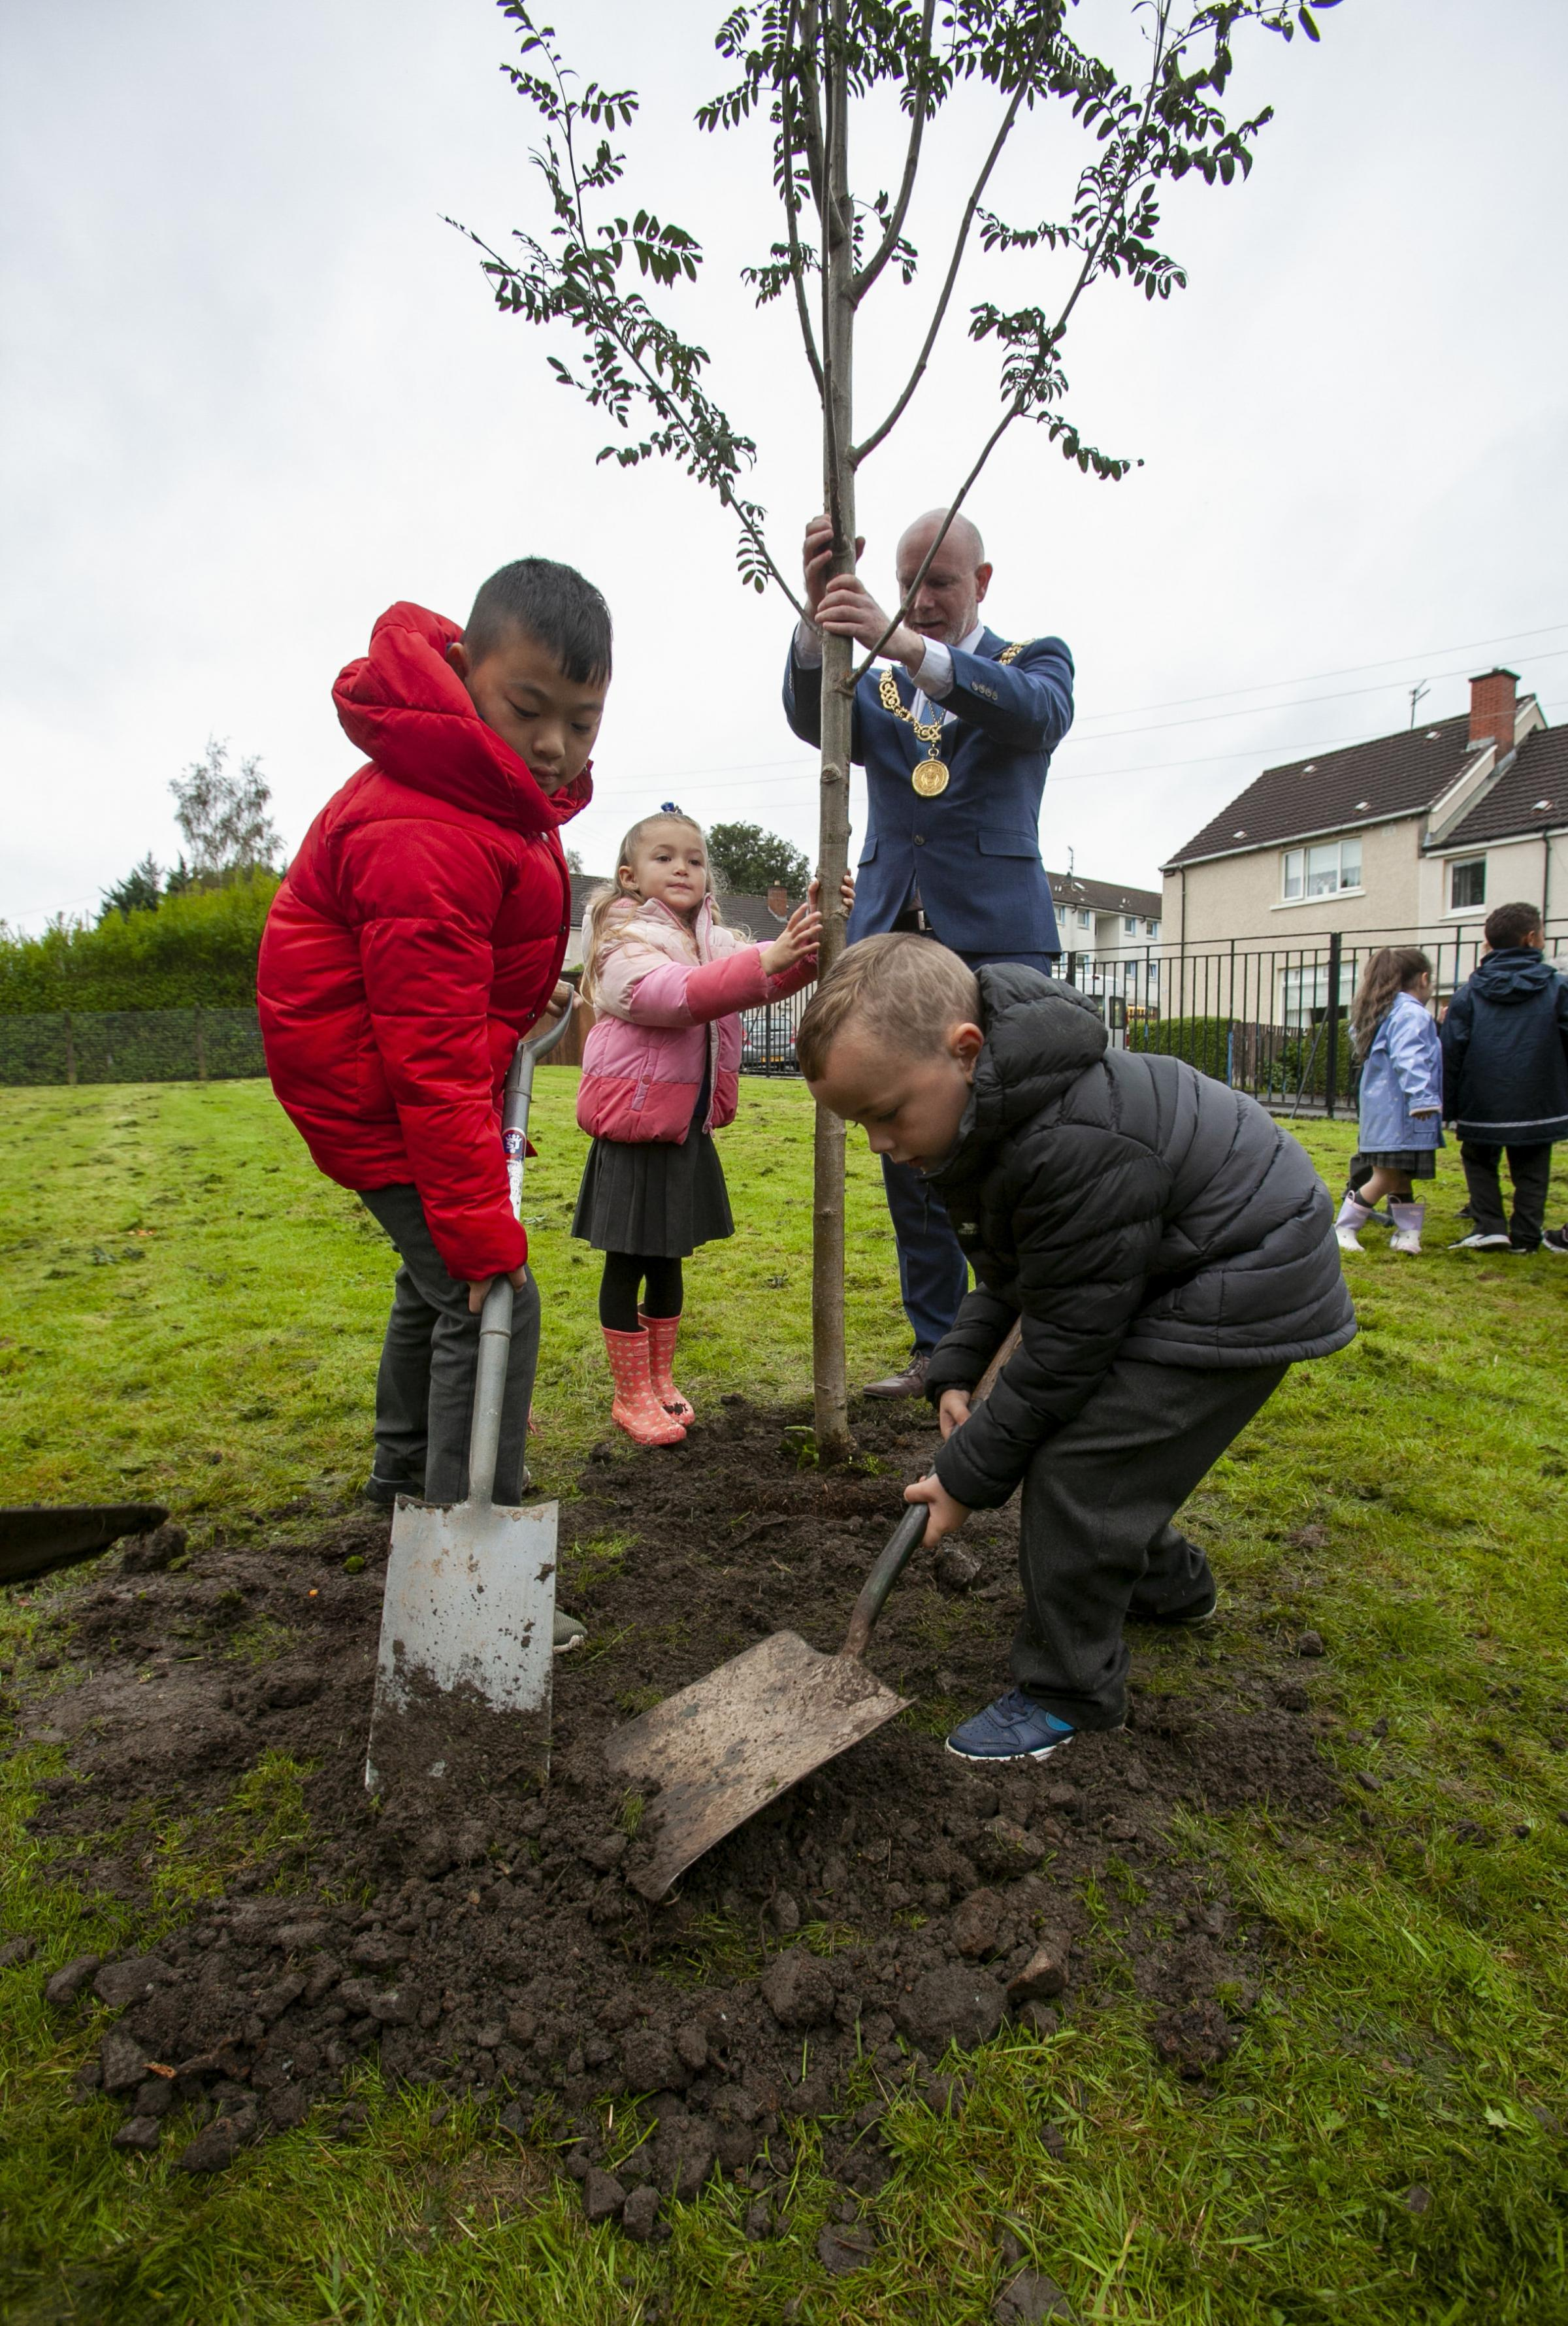 Glasgow Lord Provost Philip Brett poses as Lord Lieutenant, representing the Queen, planting trees at Cadre Primary School.  Pictured with members of the Schools Eco Committee, left Jason Lam, Orlog Gallagher, Jr.